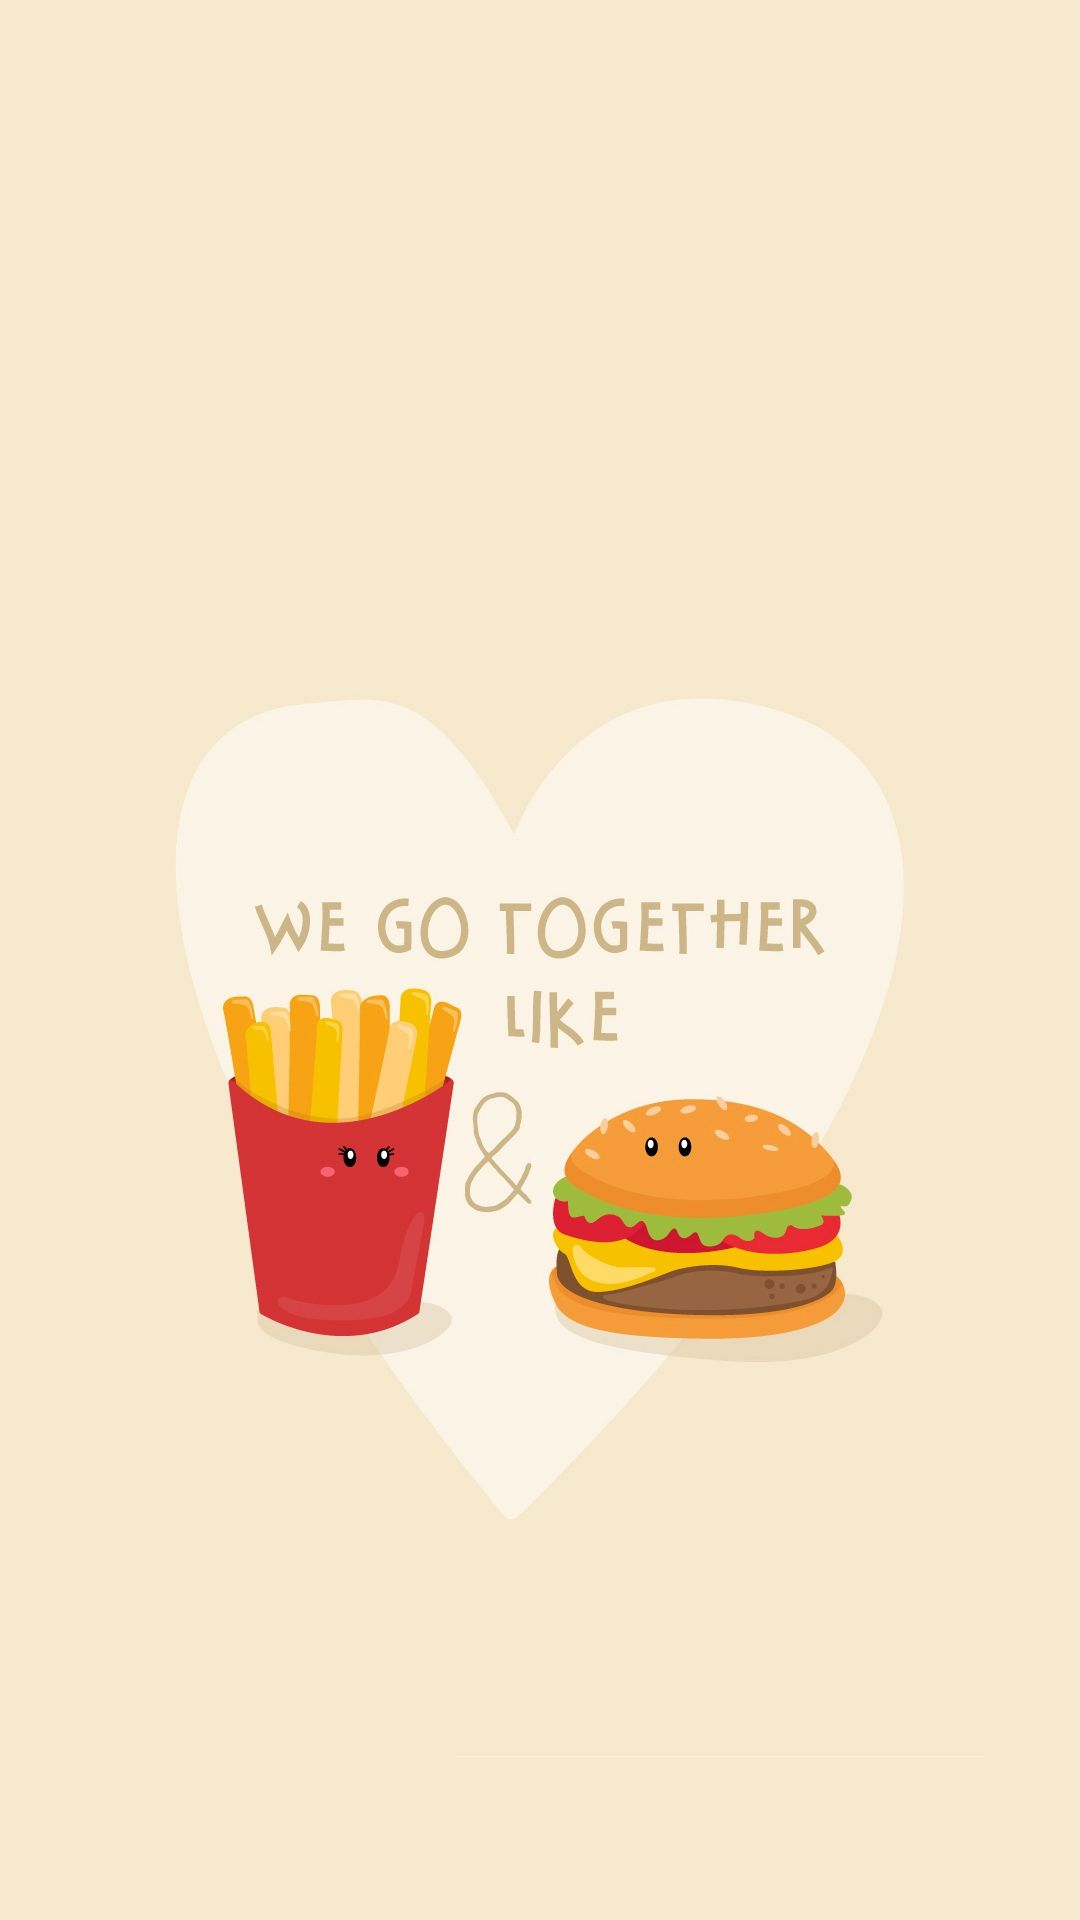 we go together like burger and fries iphone 6 plus wallpaperwe go together like burger and fries iphone 6 plus wallpaper